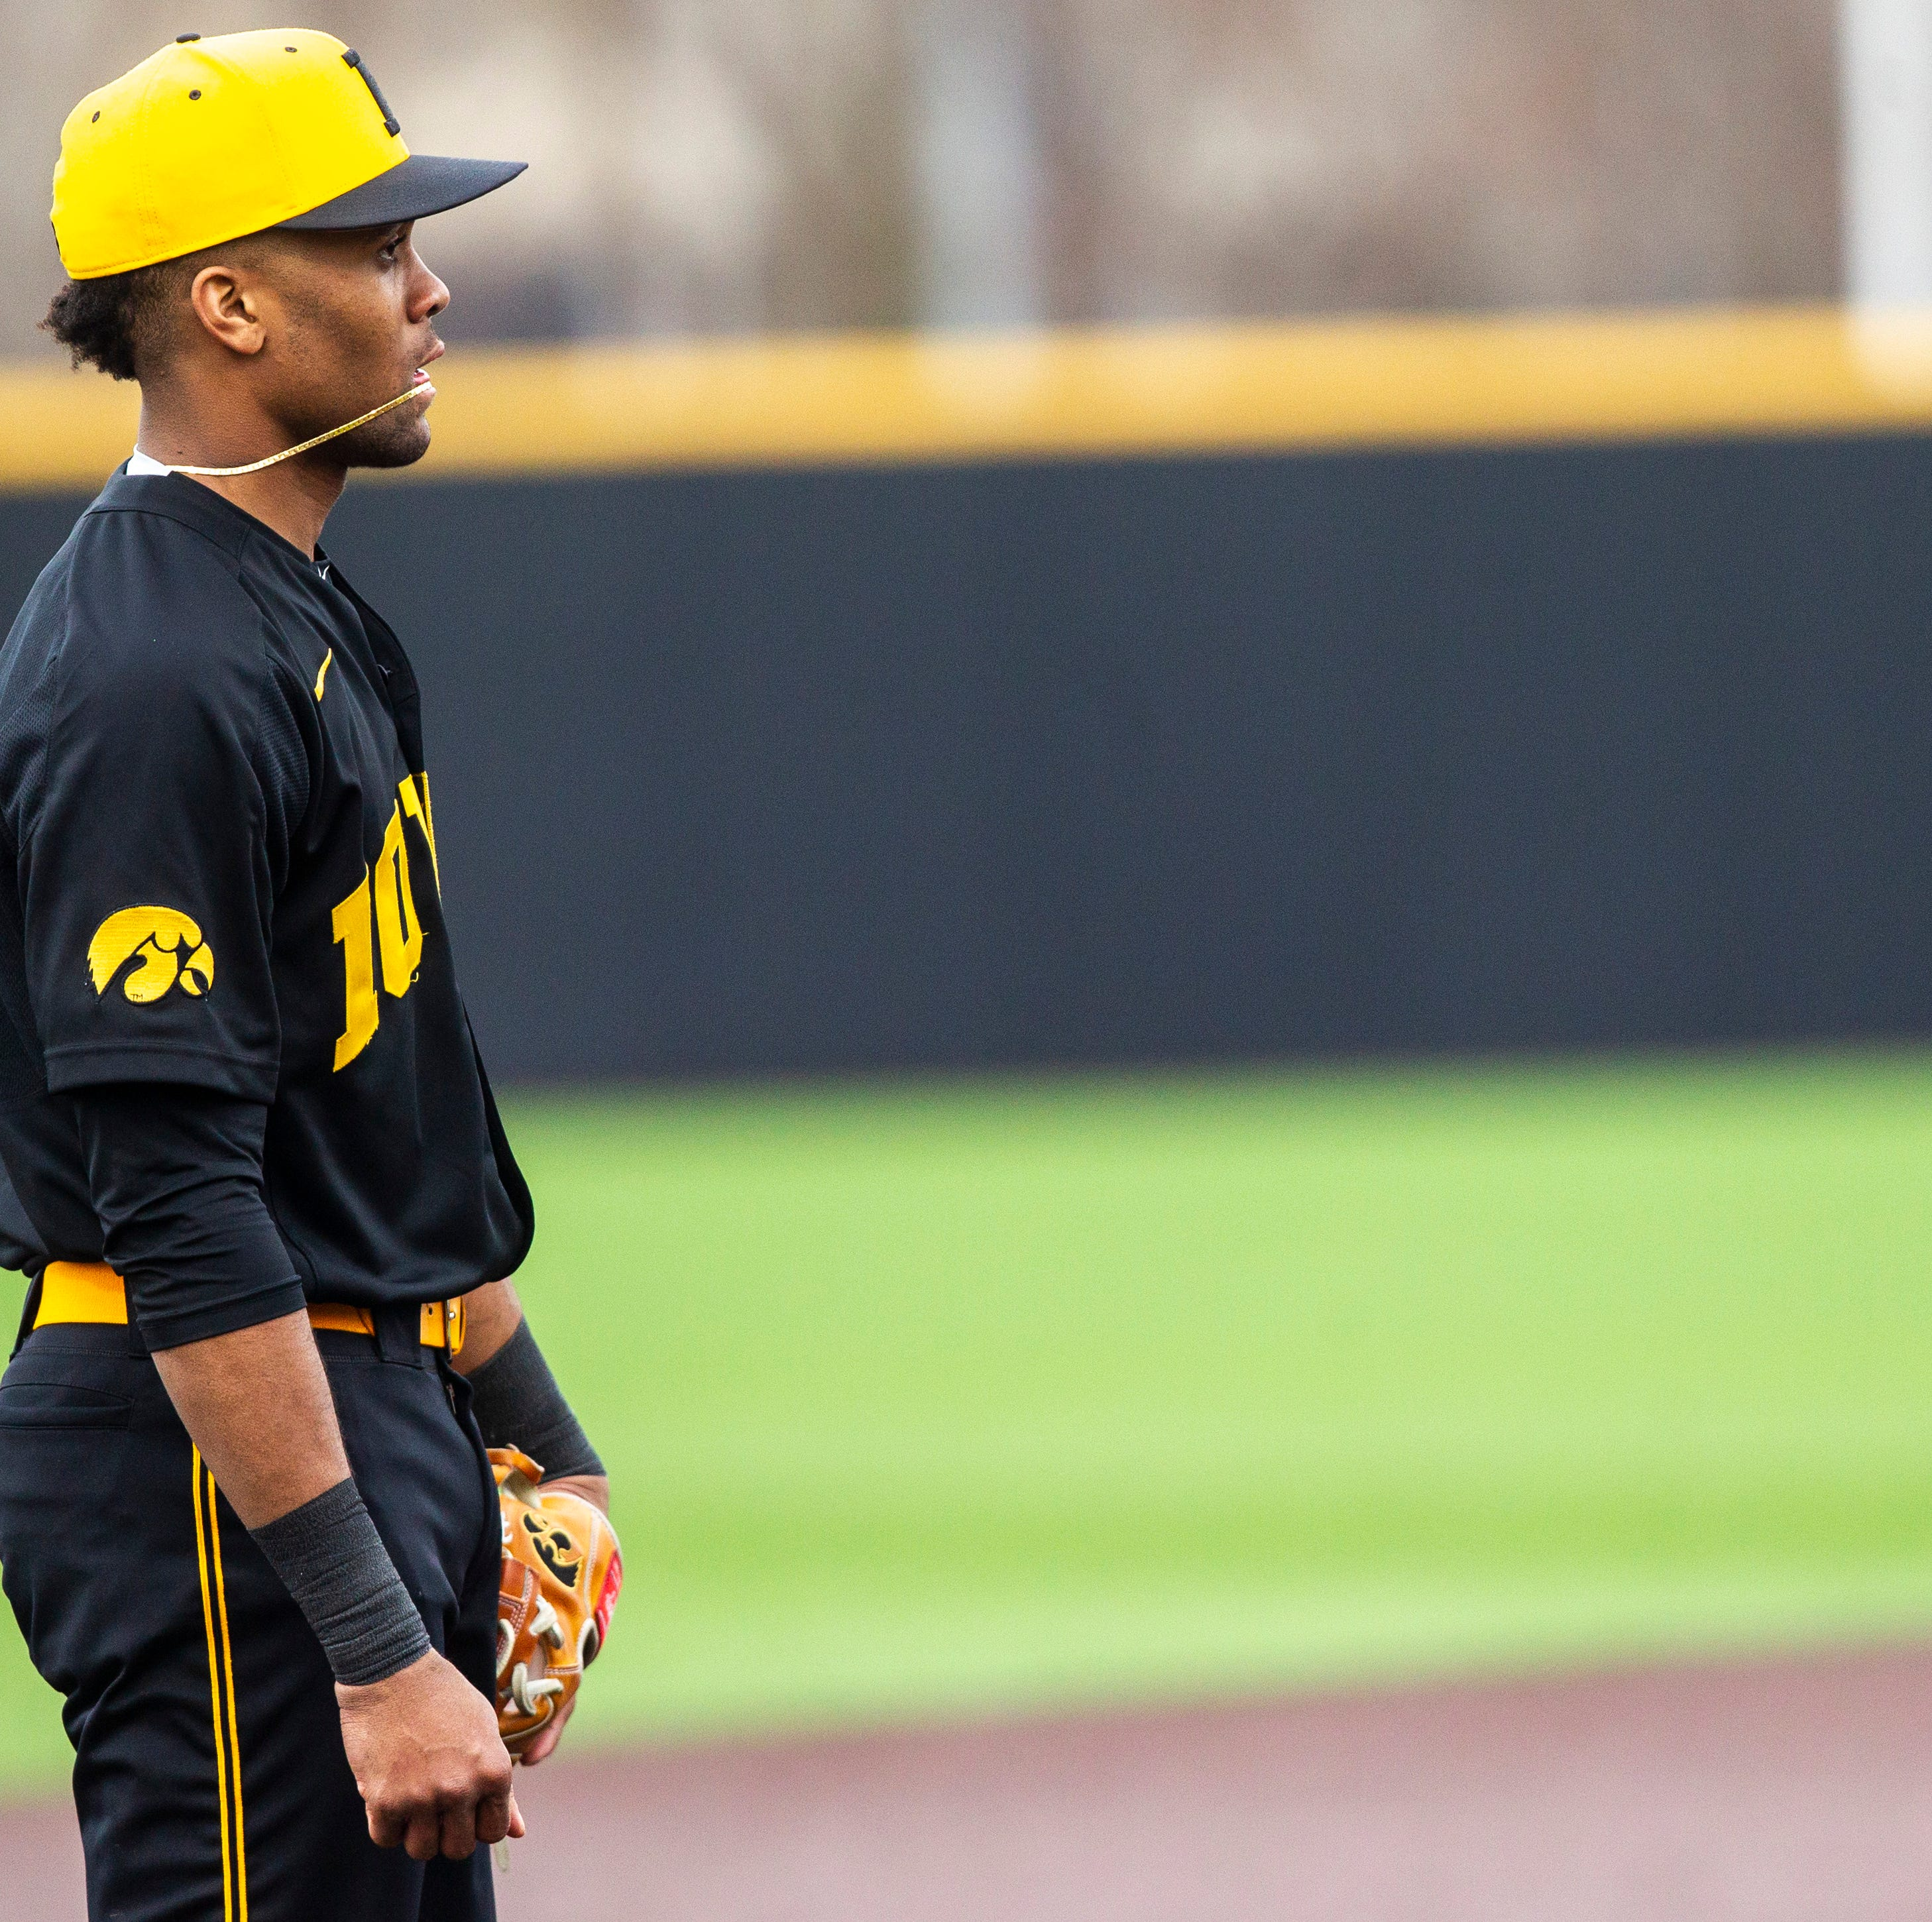 Ahead of Big Ten Tournament, Hawkeyes out to prove recent slide is 'a blip on the radar'